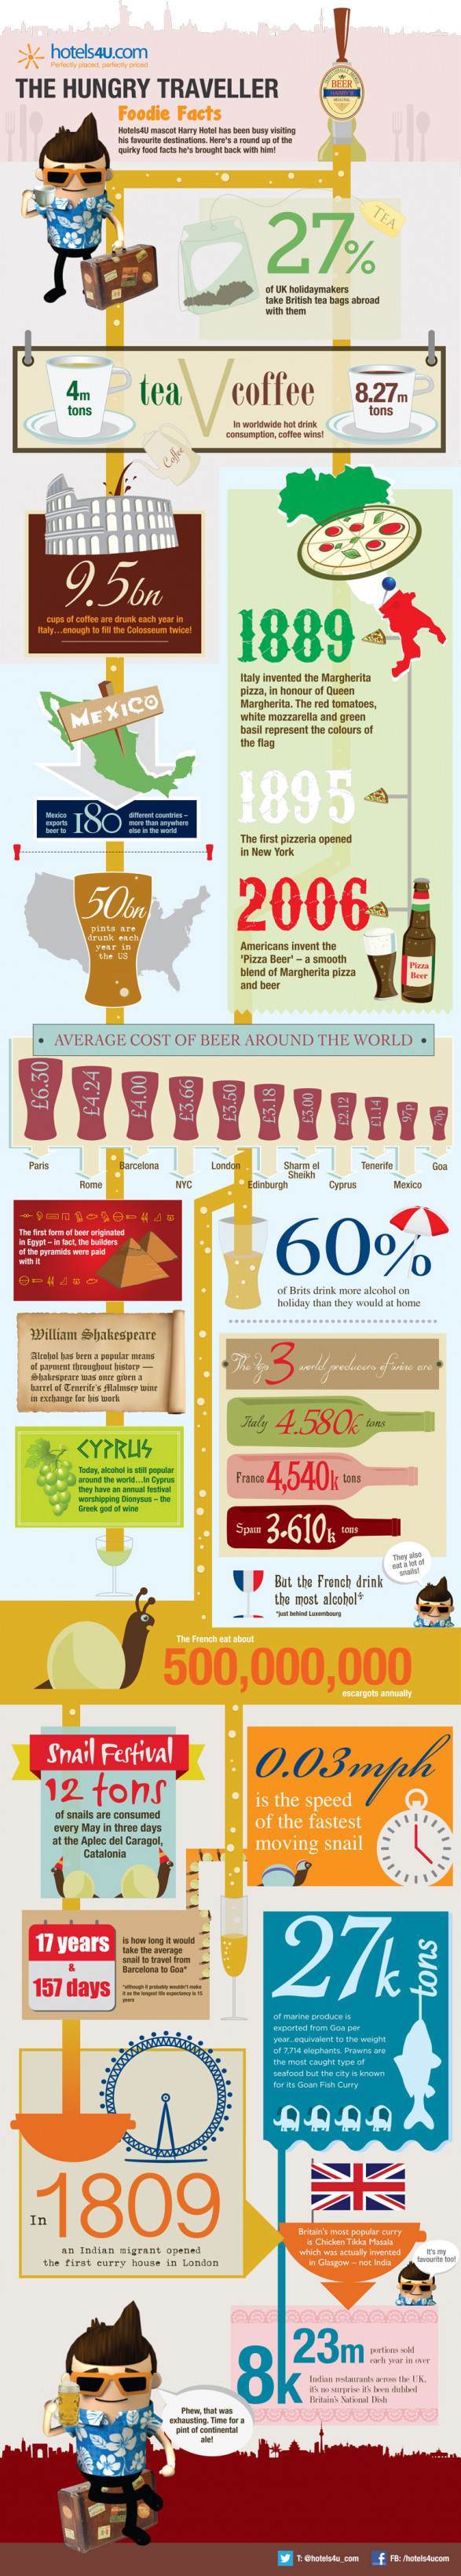 The Hungry Traveller: Foodie Facts